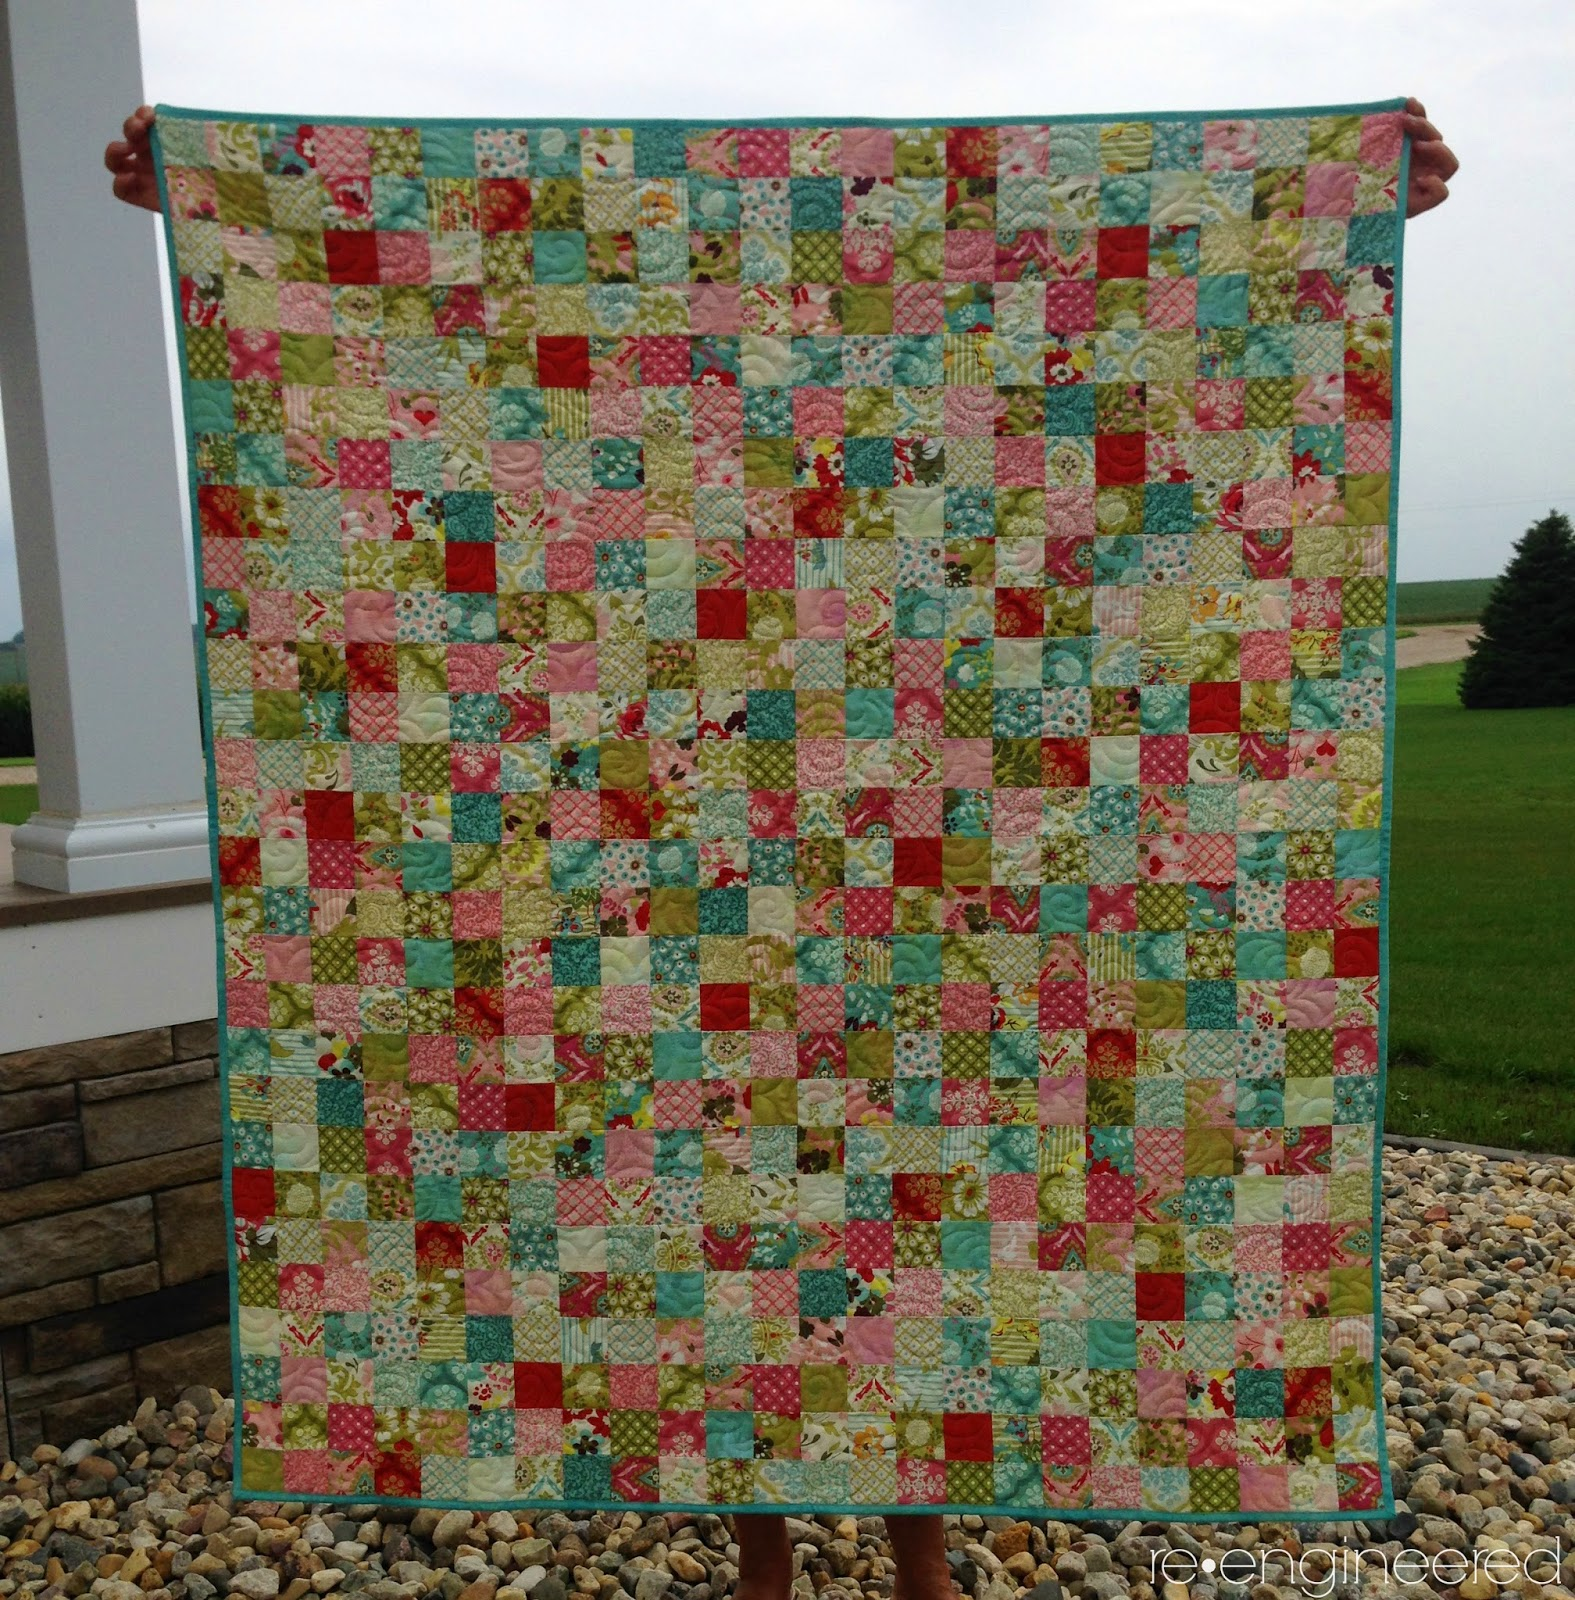 http://www.re-engineered.blogspot.com/2014/10/postage-stamp-baby-quilt.html